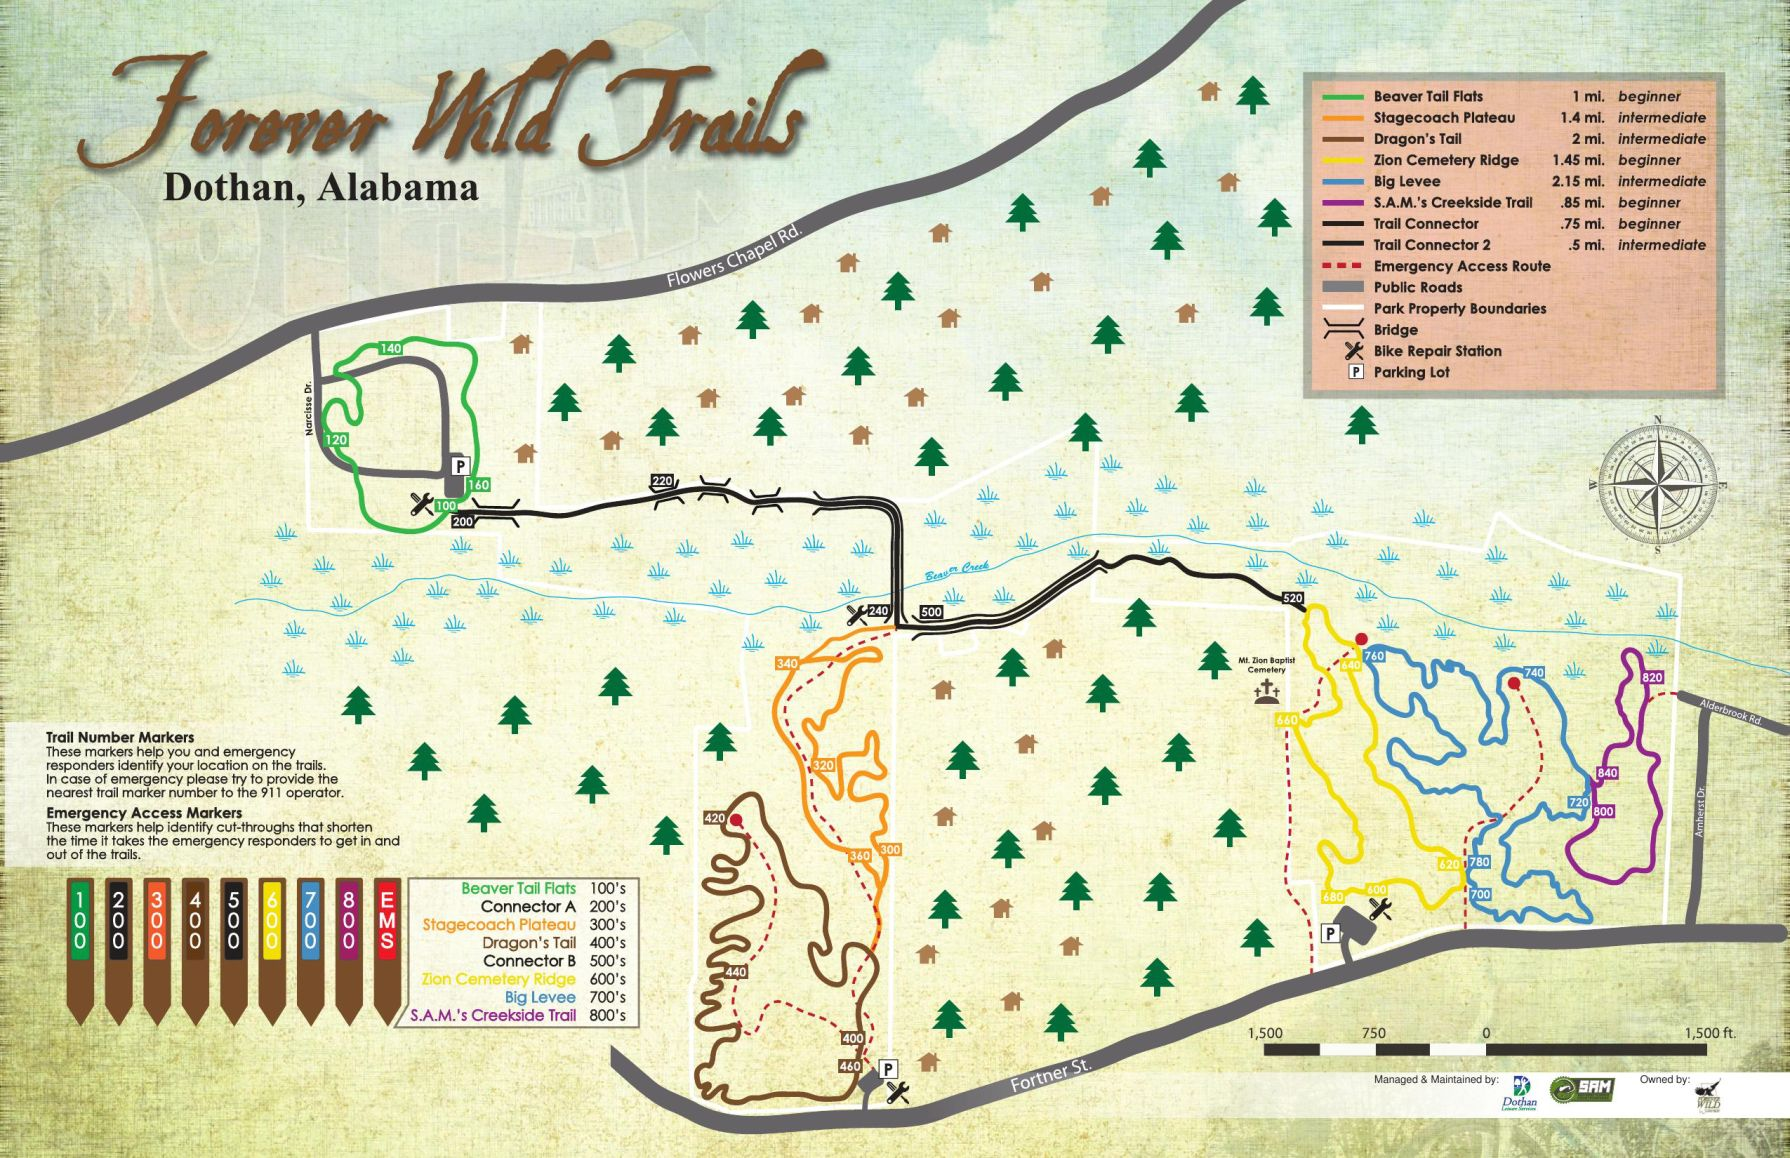 Forever Wild trails map Local dothaneaglecom